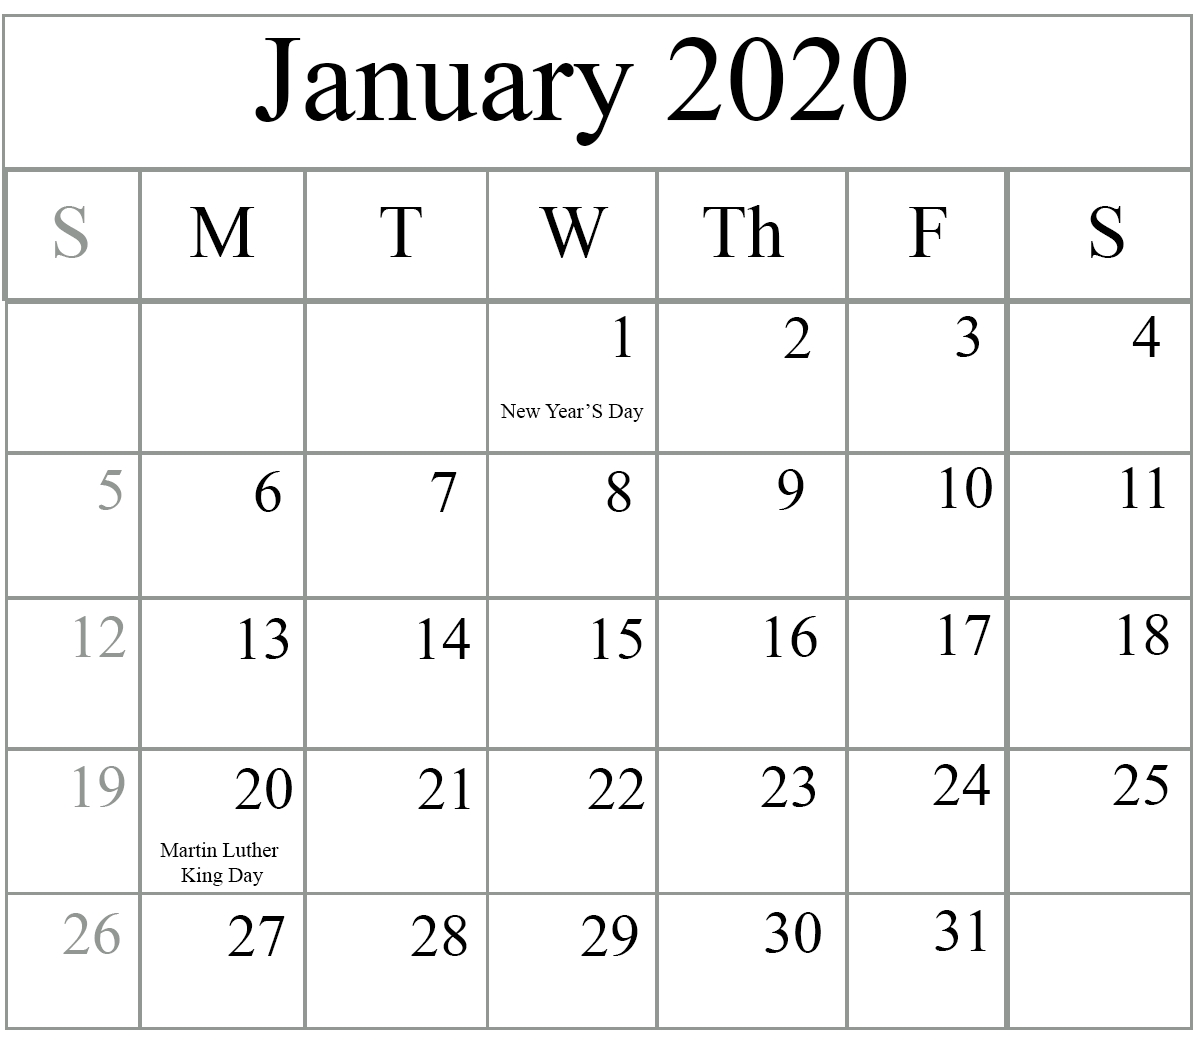 2020 Calendar With Holidays In Word - Colona.rsd7 within Printable Calendar 2020 Monthly With Holidays